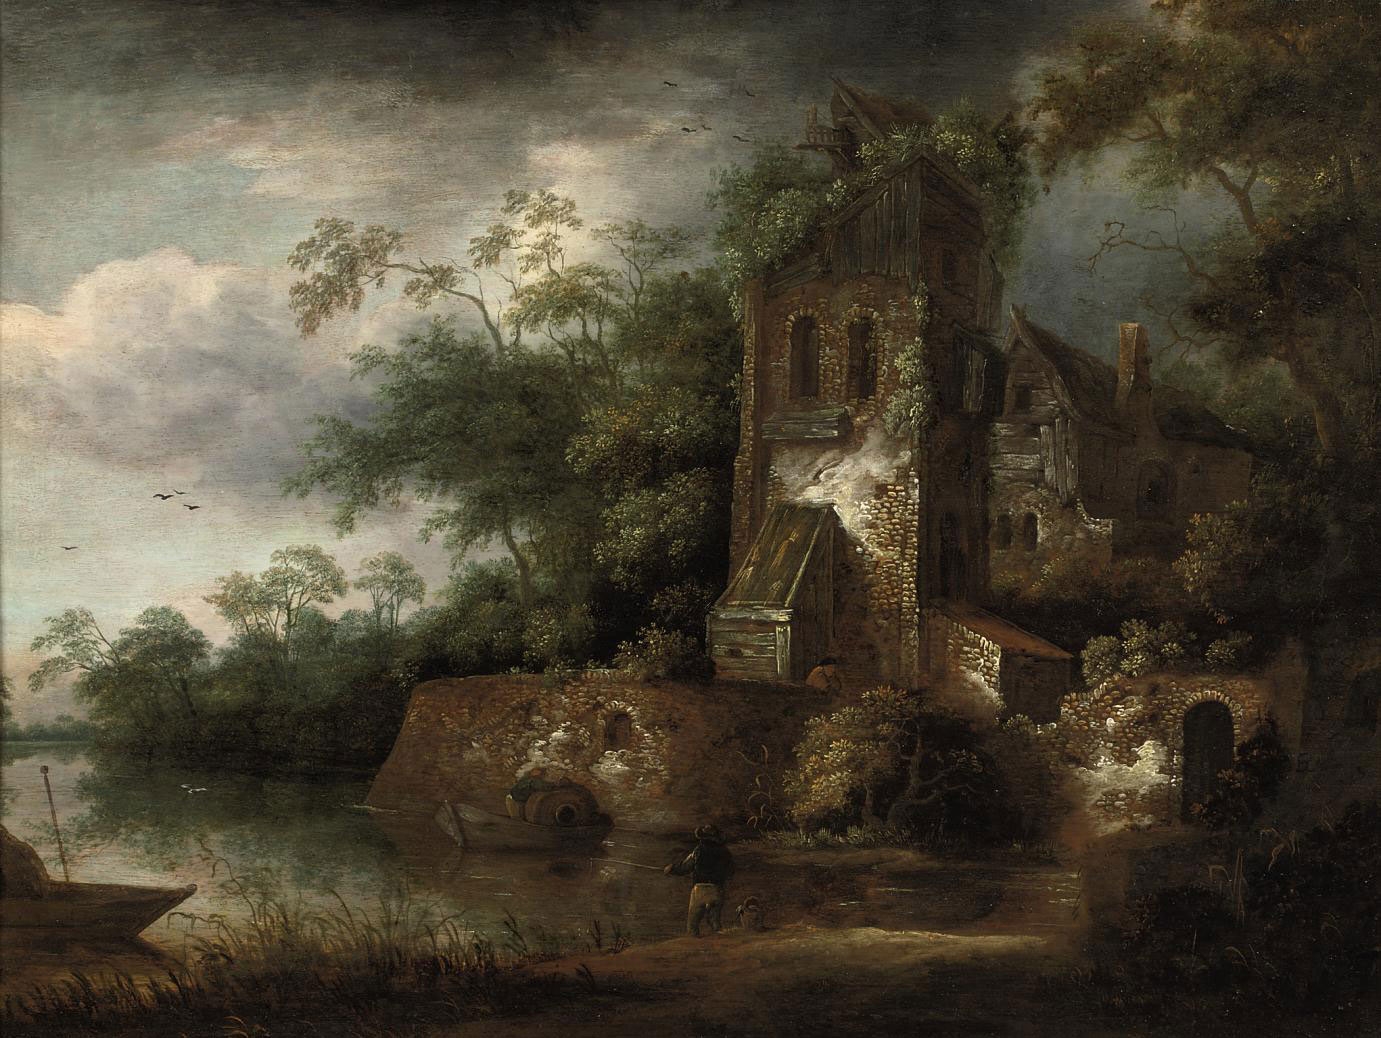 A wooded river landscape with fishermen near a ruined tower